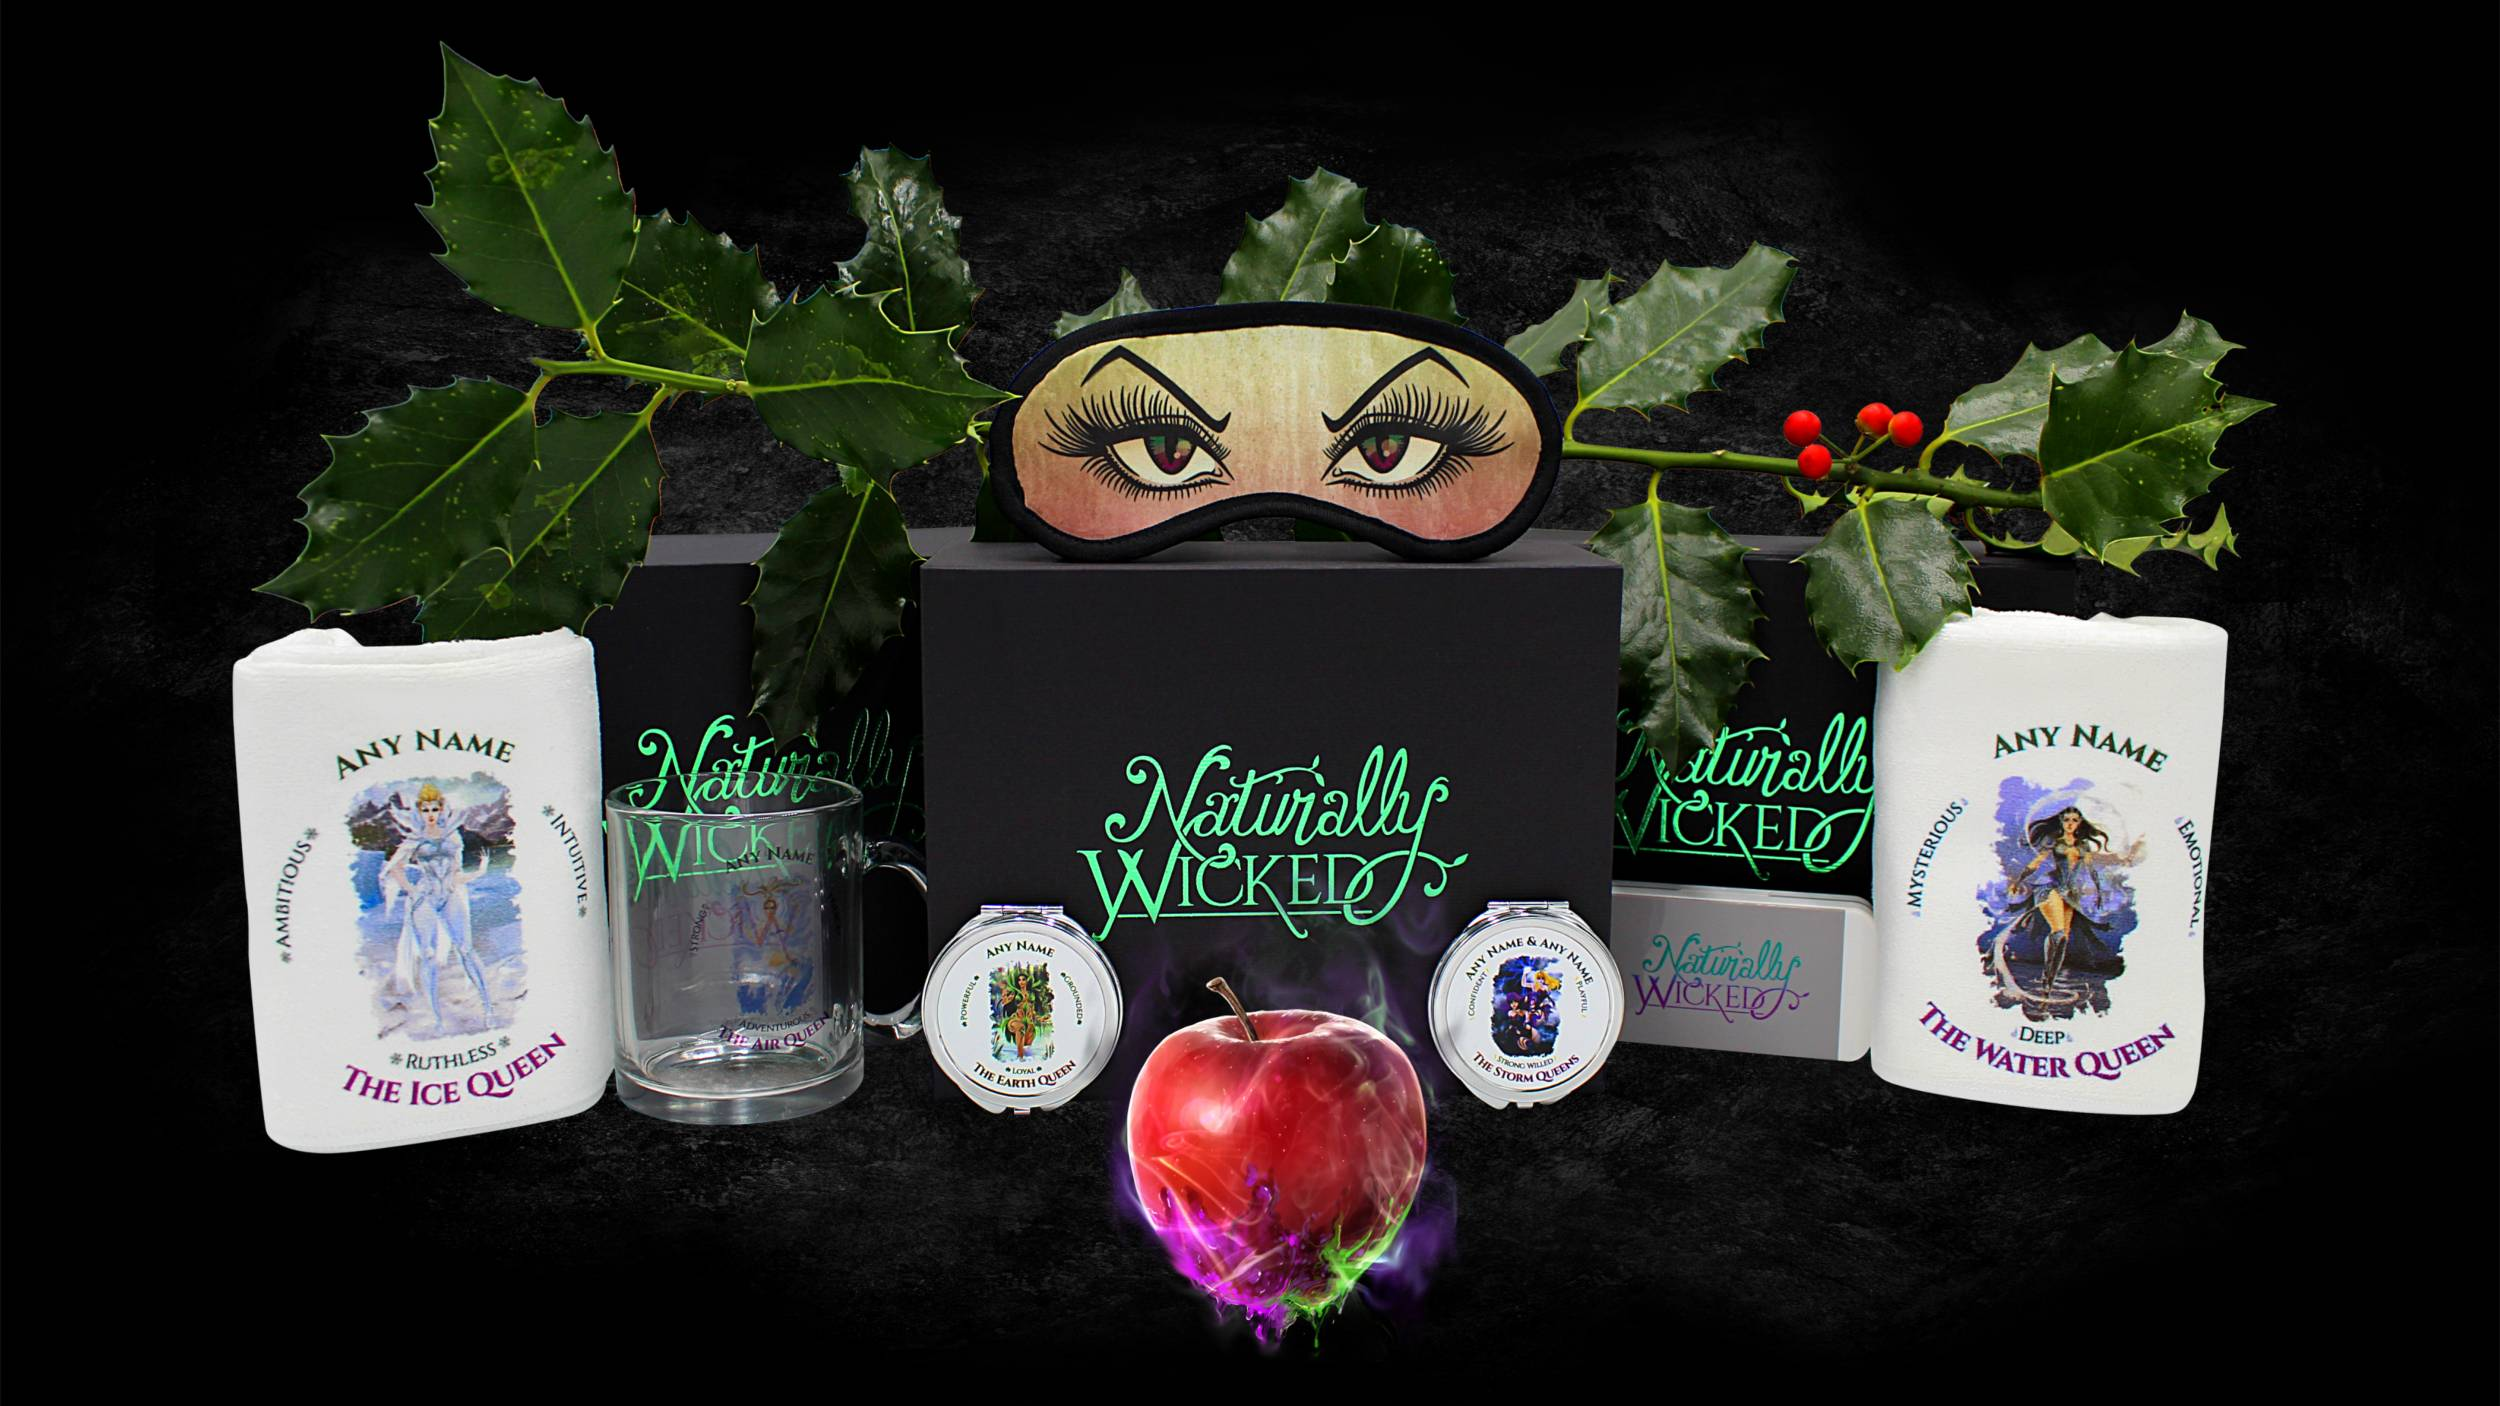 Naturally Wicked Black & Green Personalised Deluxe Gift Boxes Surrounded By Eye Mask, Wicked Queen Towels, Mirrors, Mug & Poisonous Apple